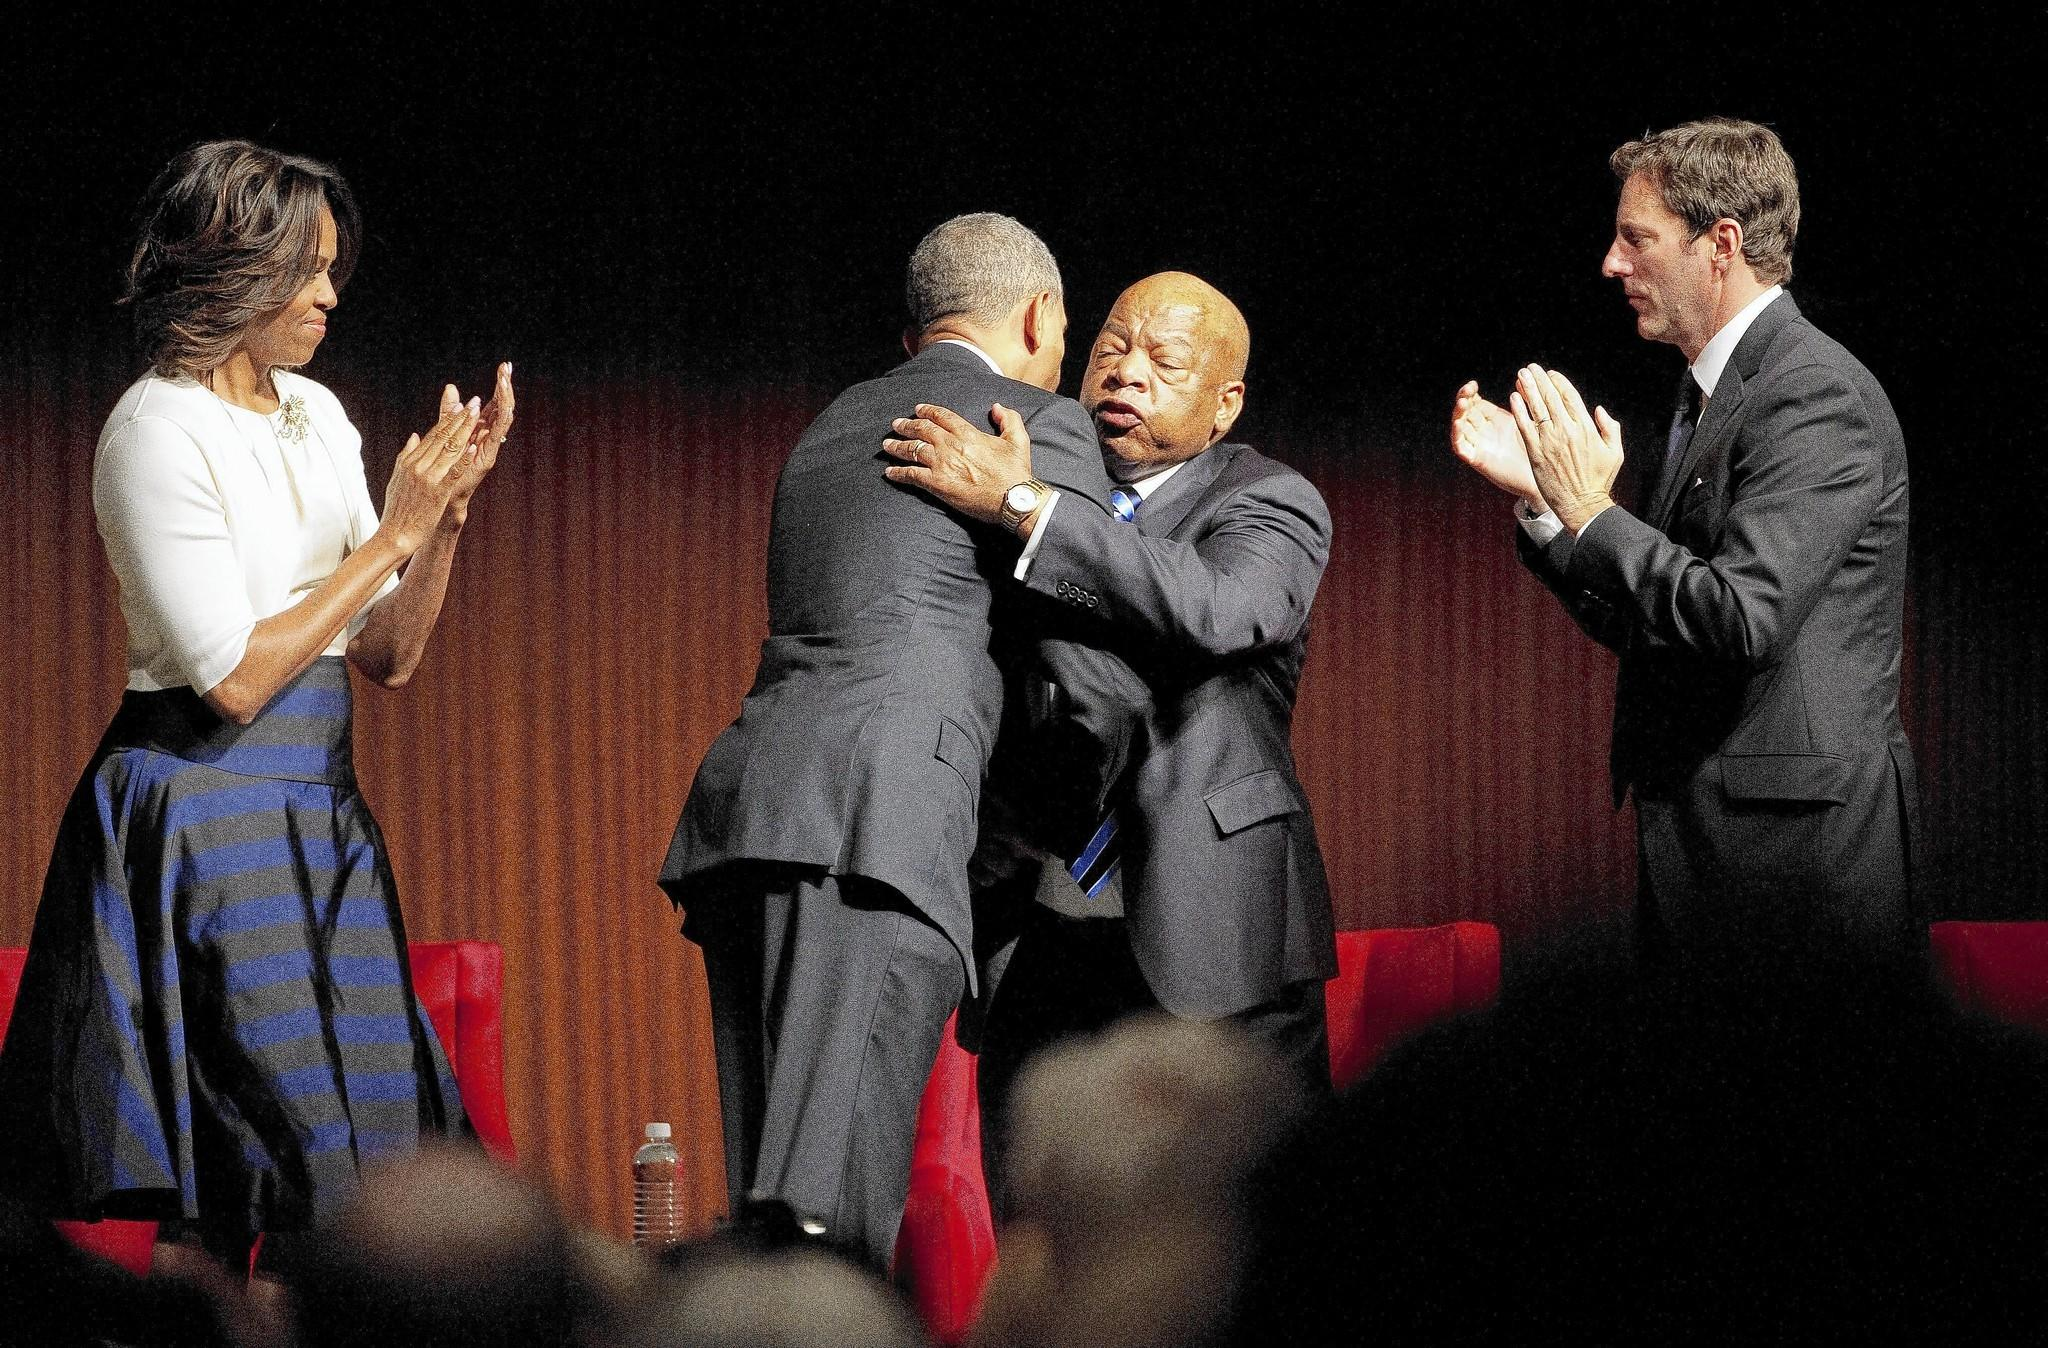 President Obama greets Rep. John Lewis (D-Ga.) after speaking on civil rights at the LBJ Presidential Library in Austin, Texas. Looking on are First Lady Michelle Obama and Mark Updegrove, the library's executive director.